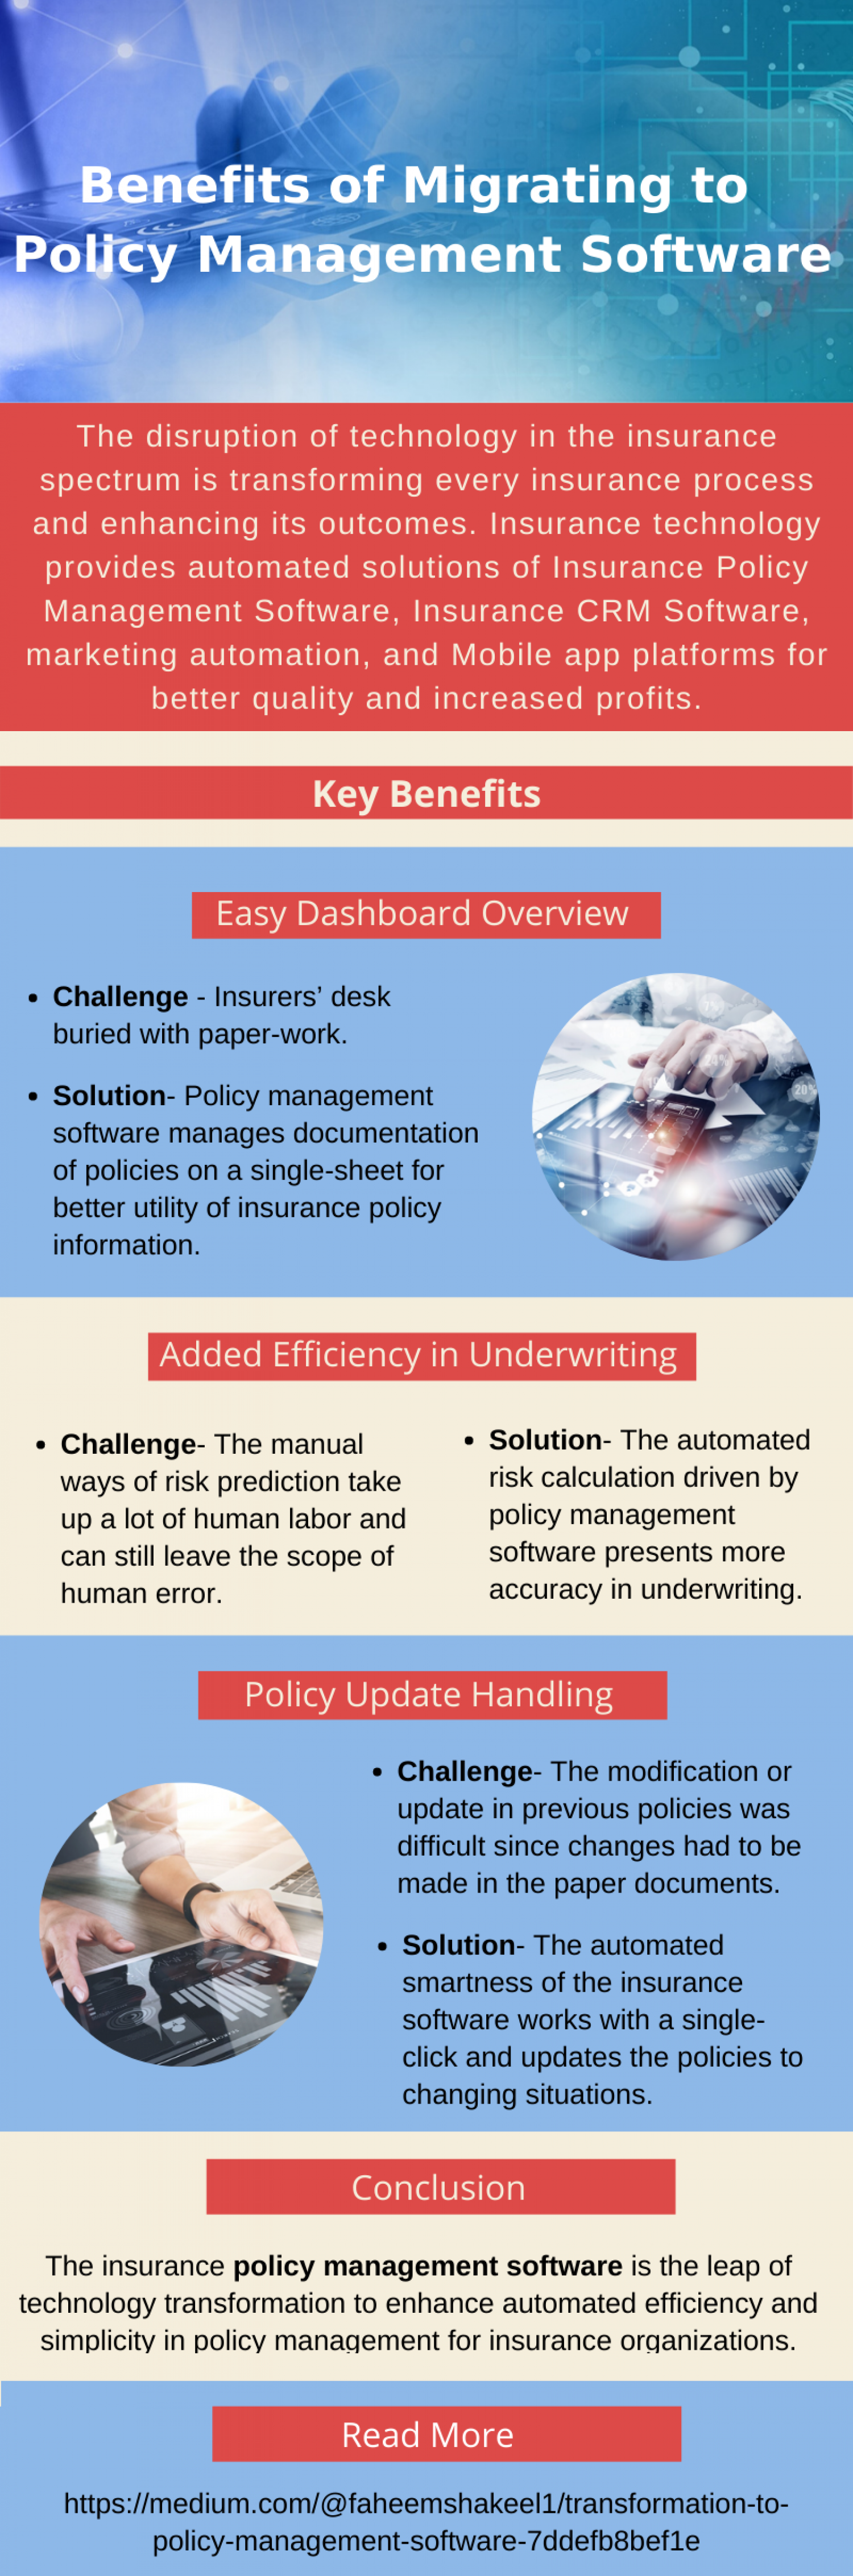 Benefits of Migrating to Policy Management Software Infographic